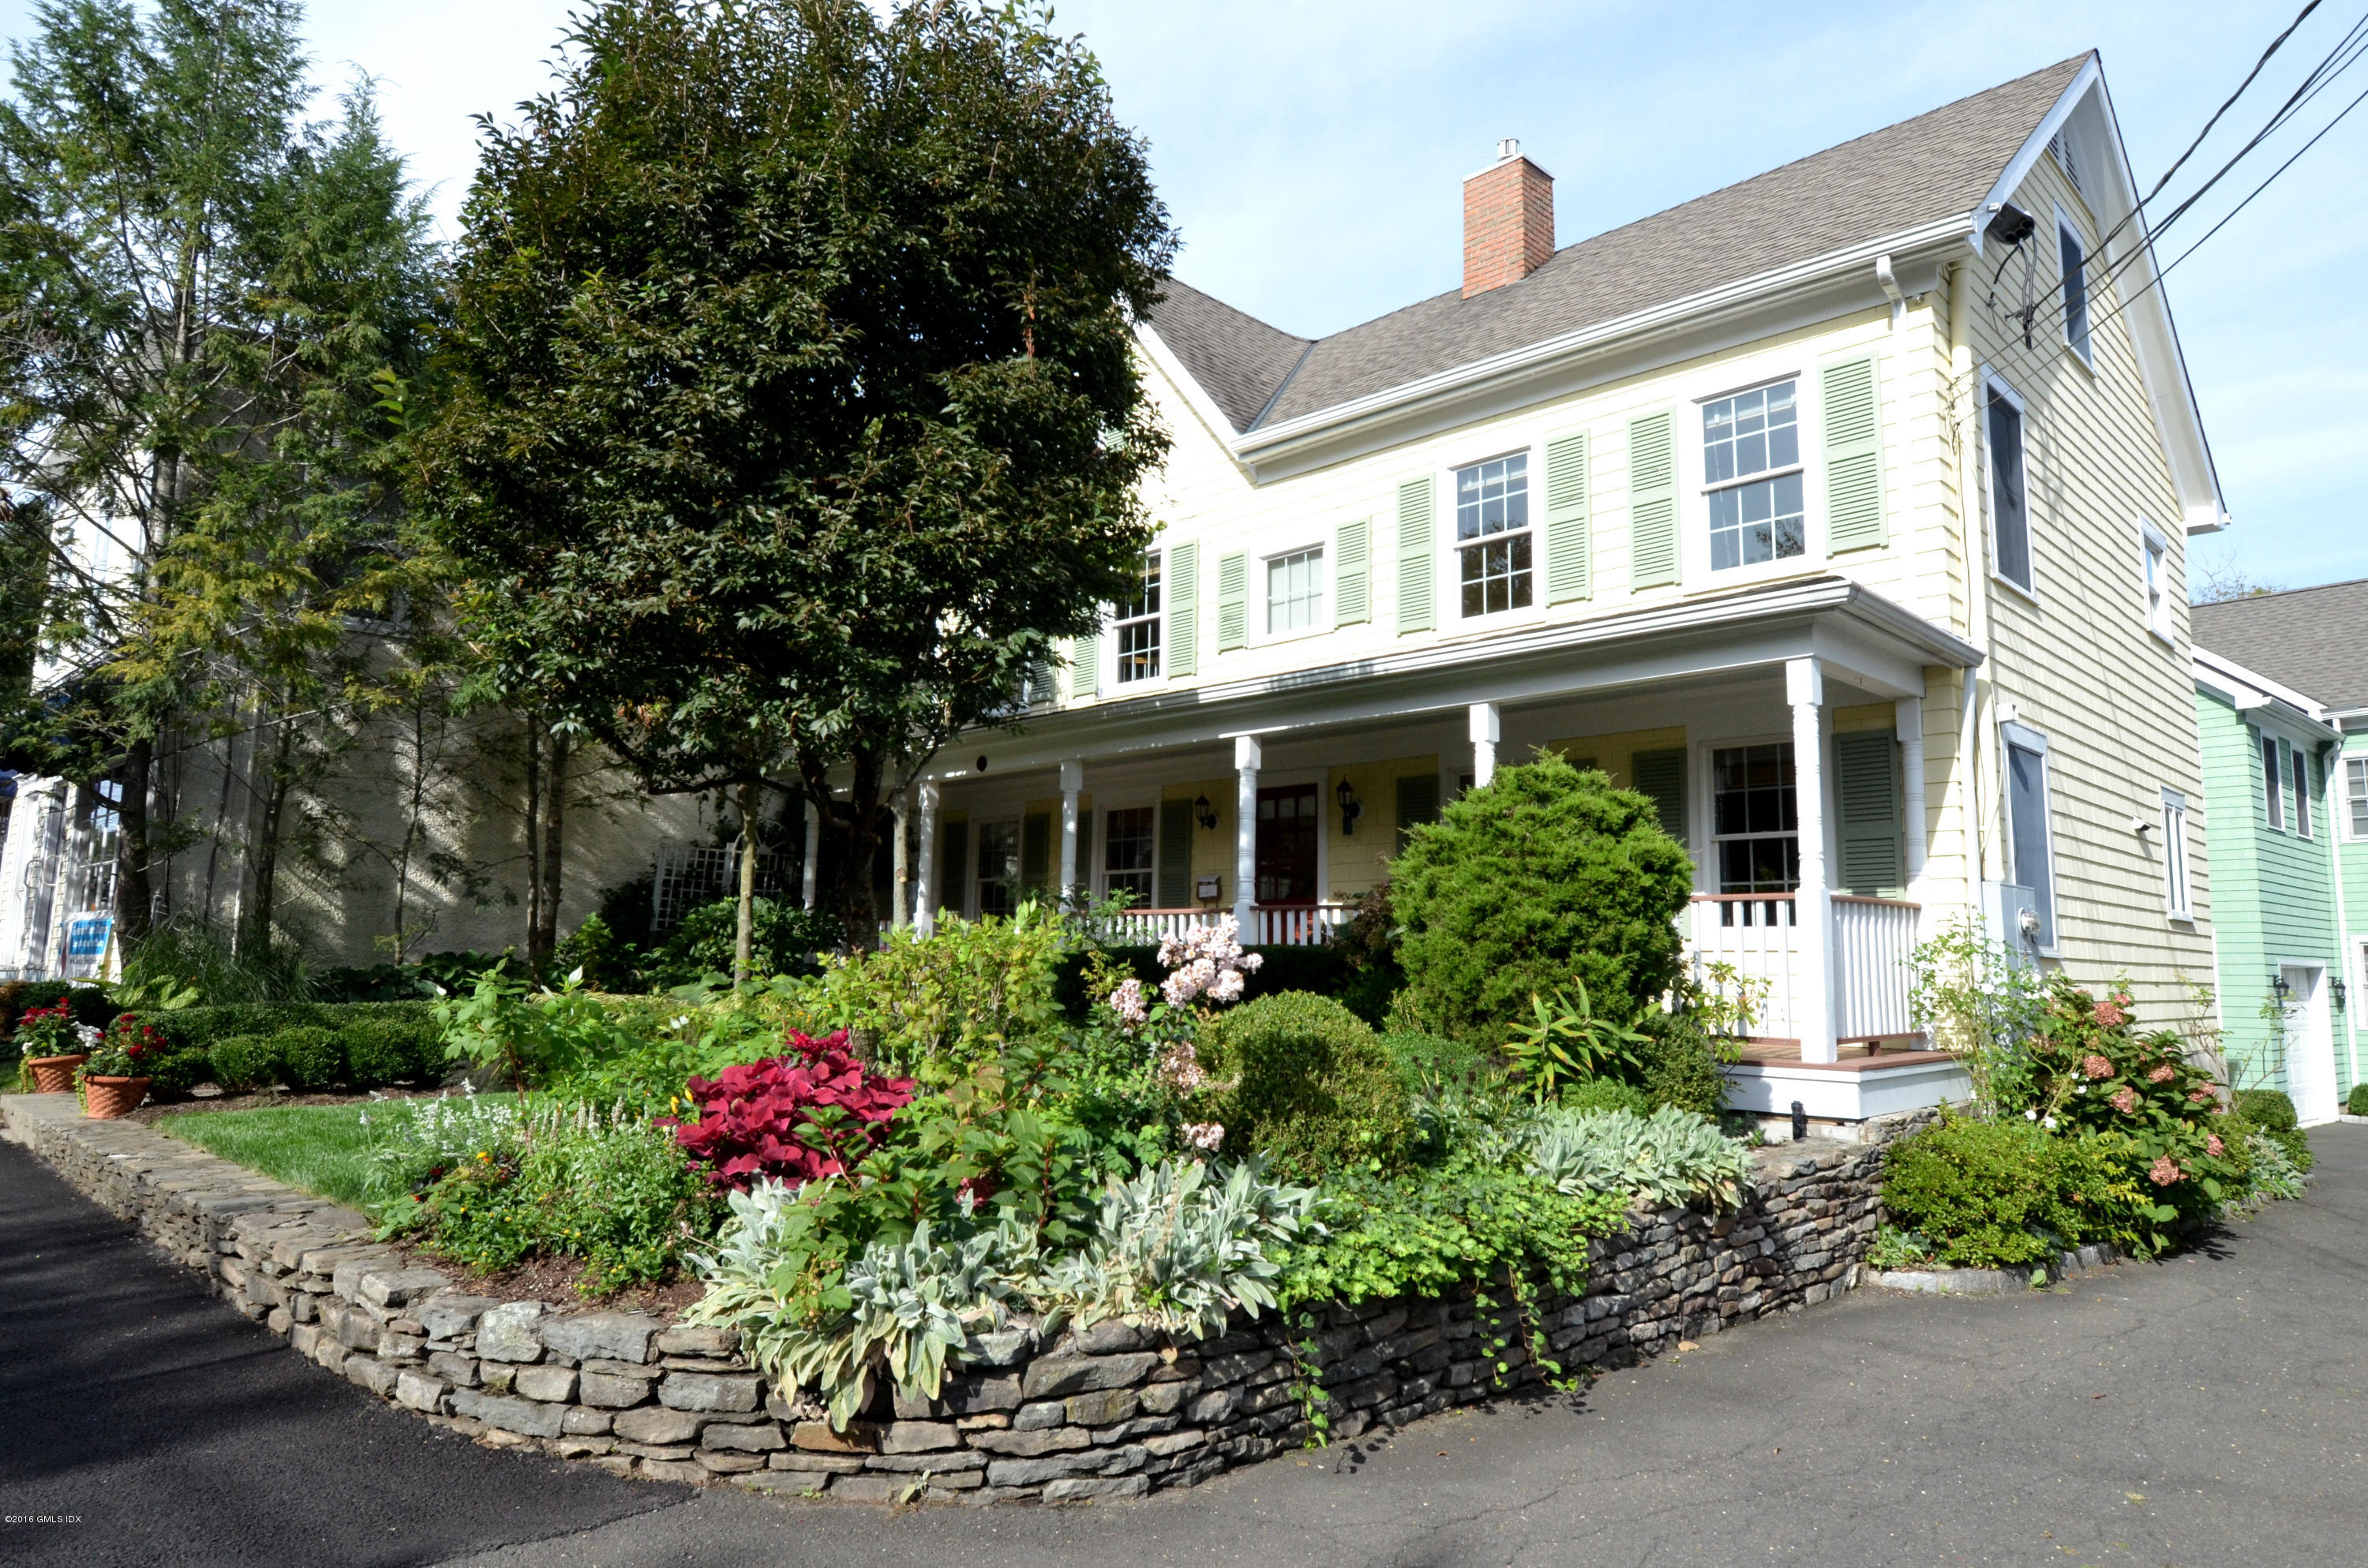 45 William Street,Greenwich,Connecticut 06830,3 Bedrooms Bedrooms,2 BathroomsBathrooms,Condominium,William,105088